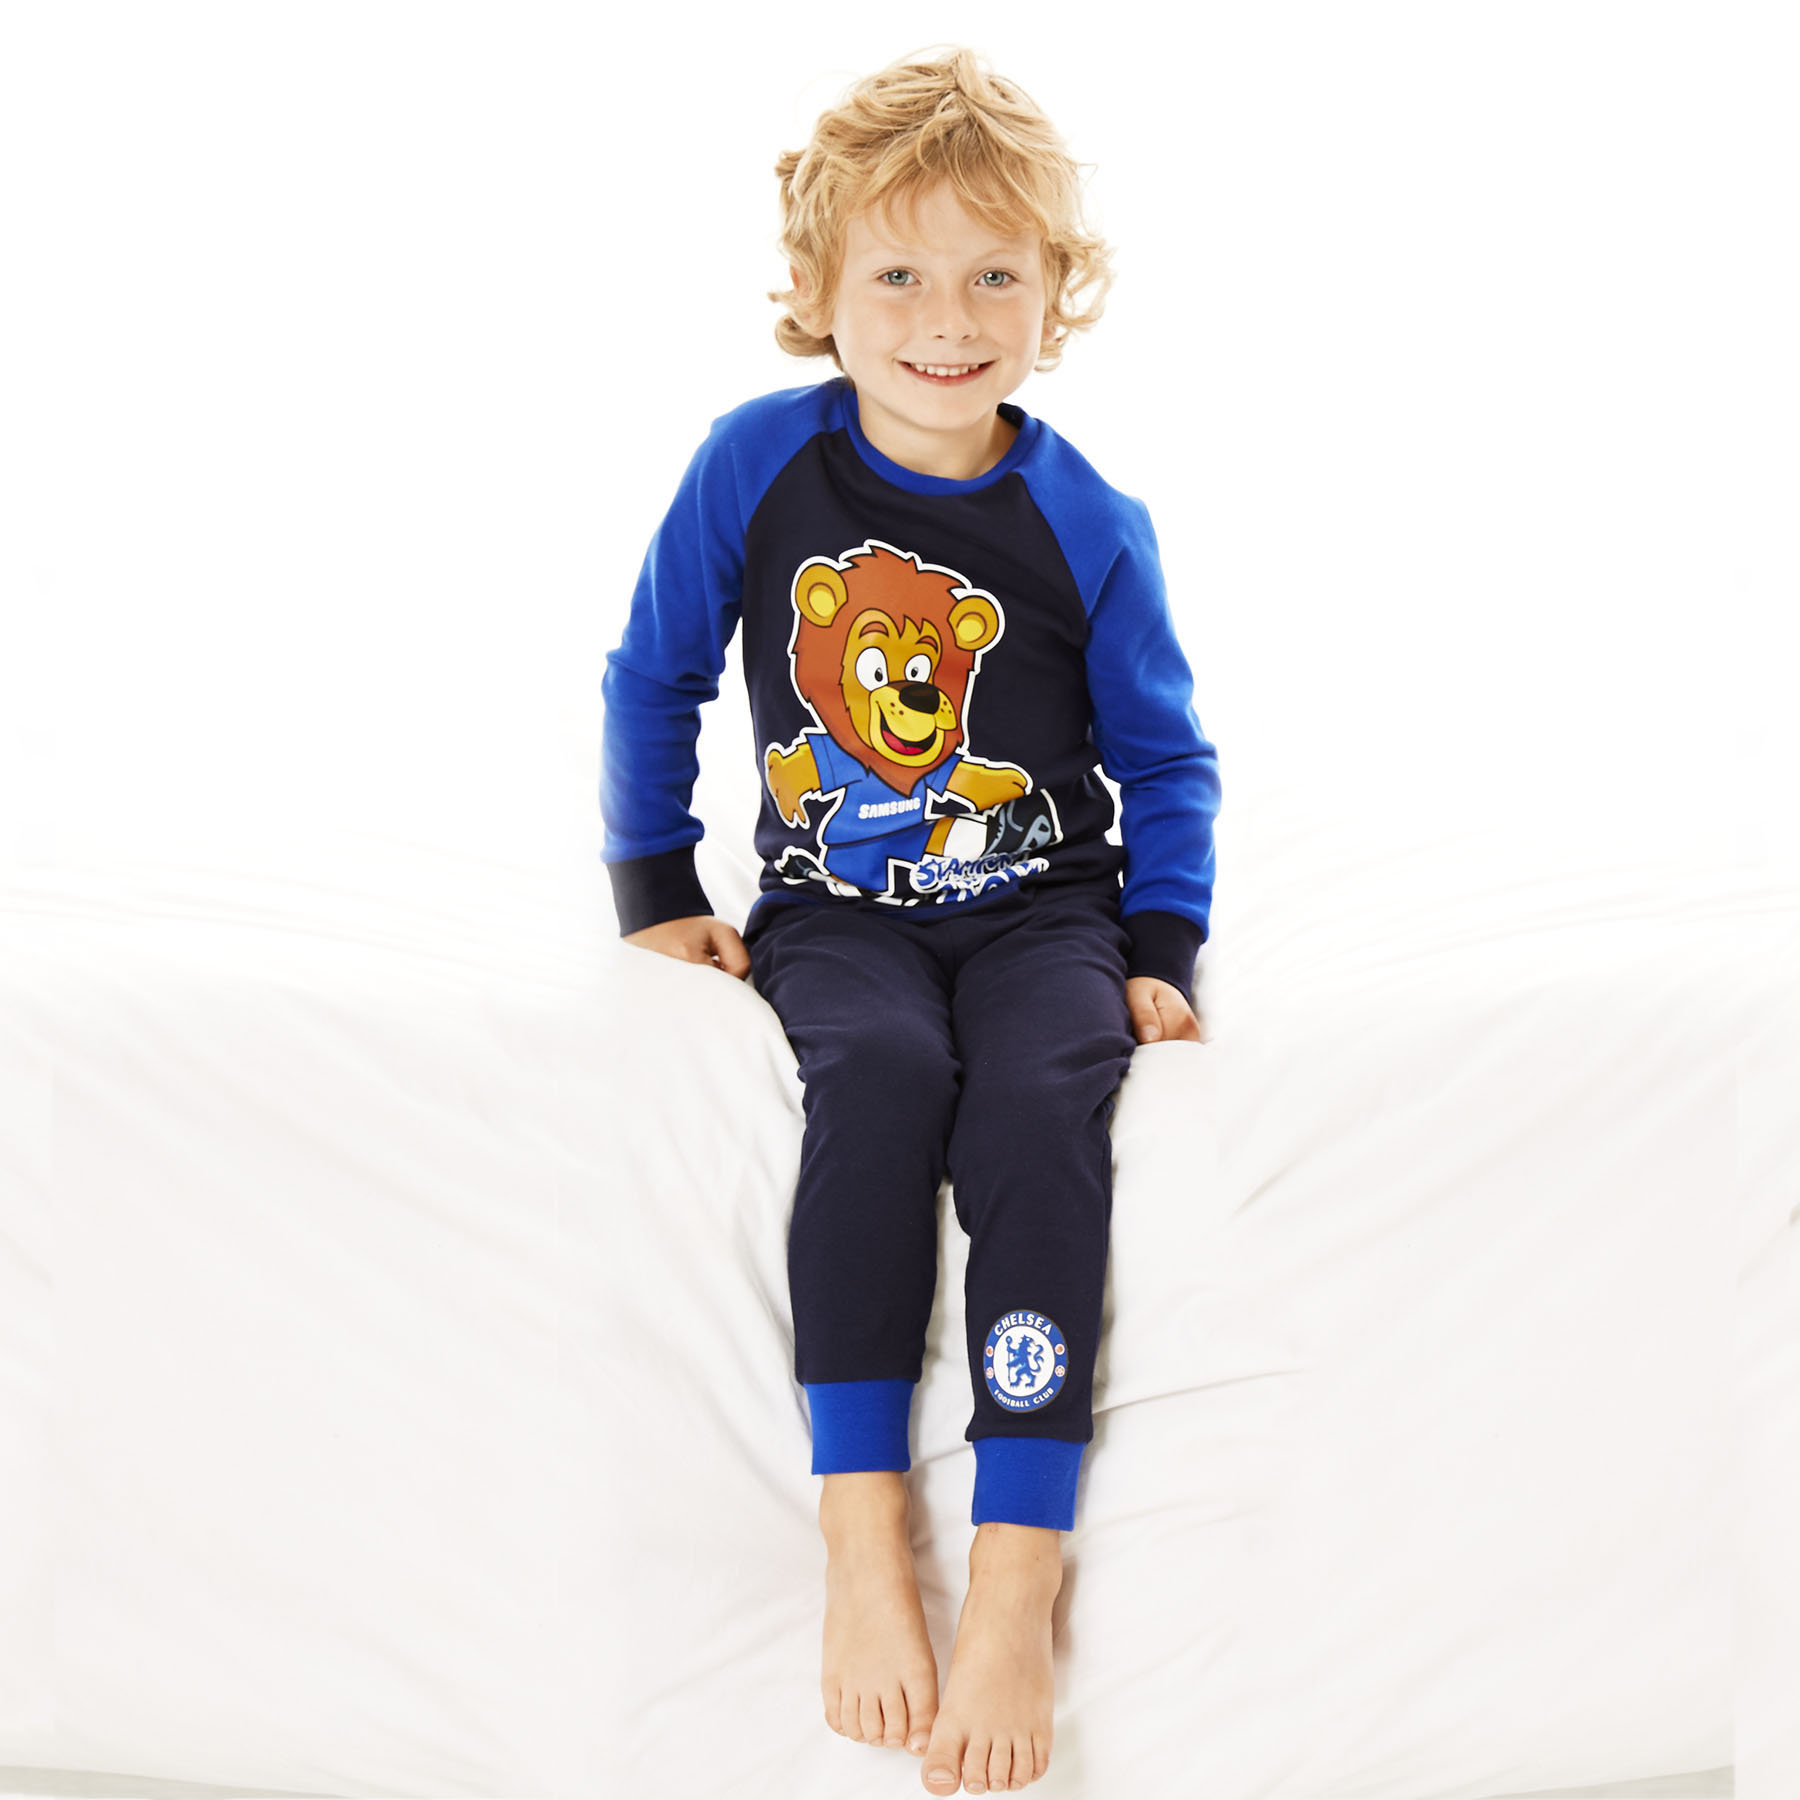 Chelsea Stamford The Lion Snuggle Fit Pyjamas - Navy - Infant Boys